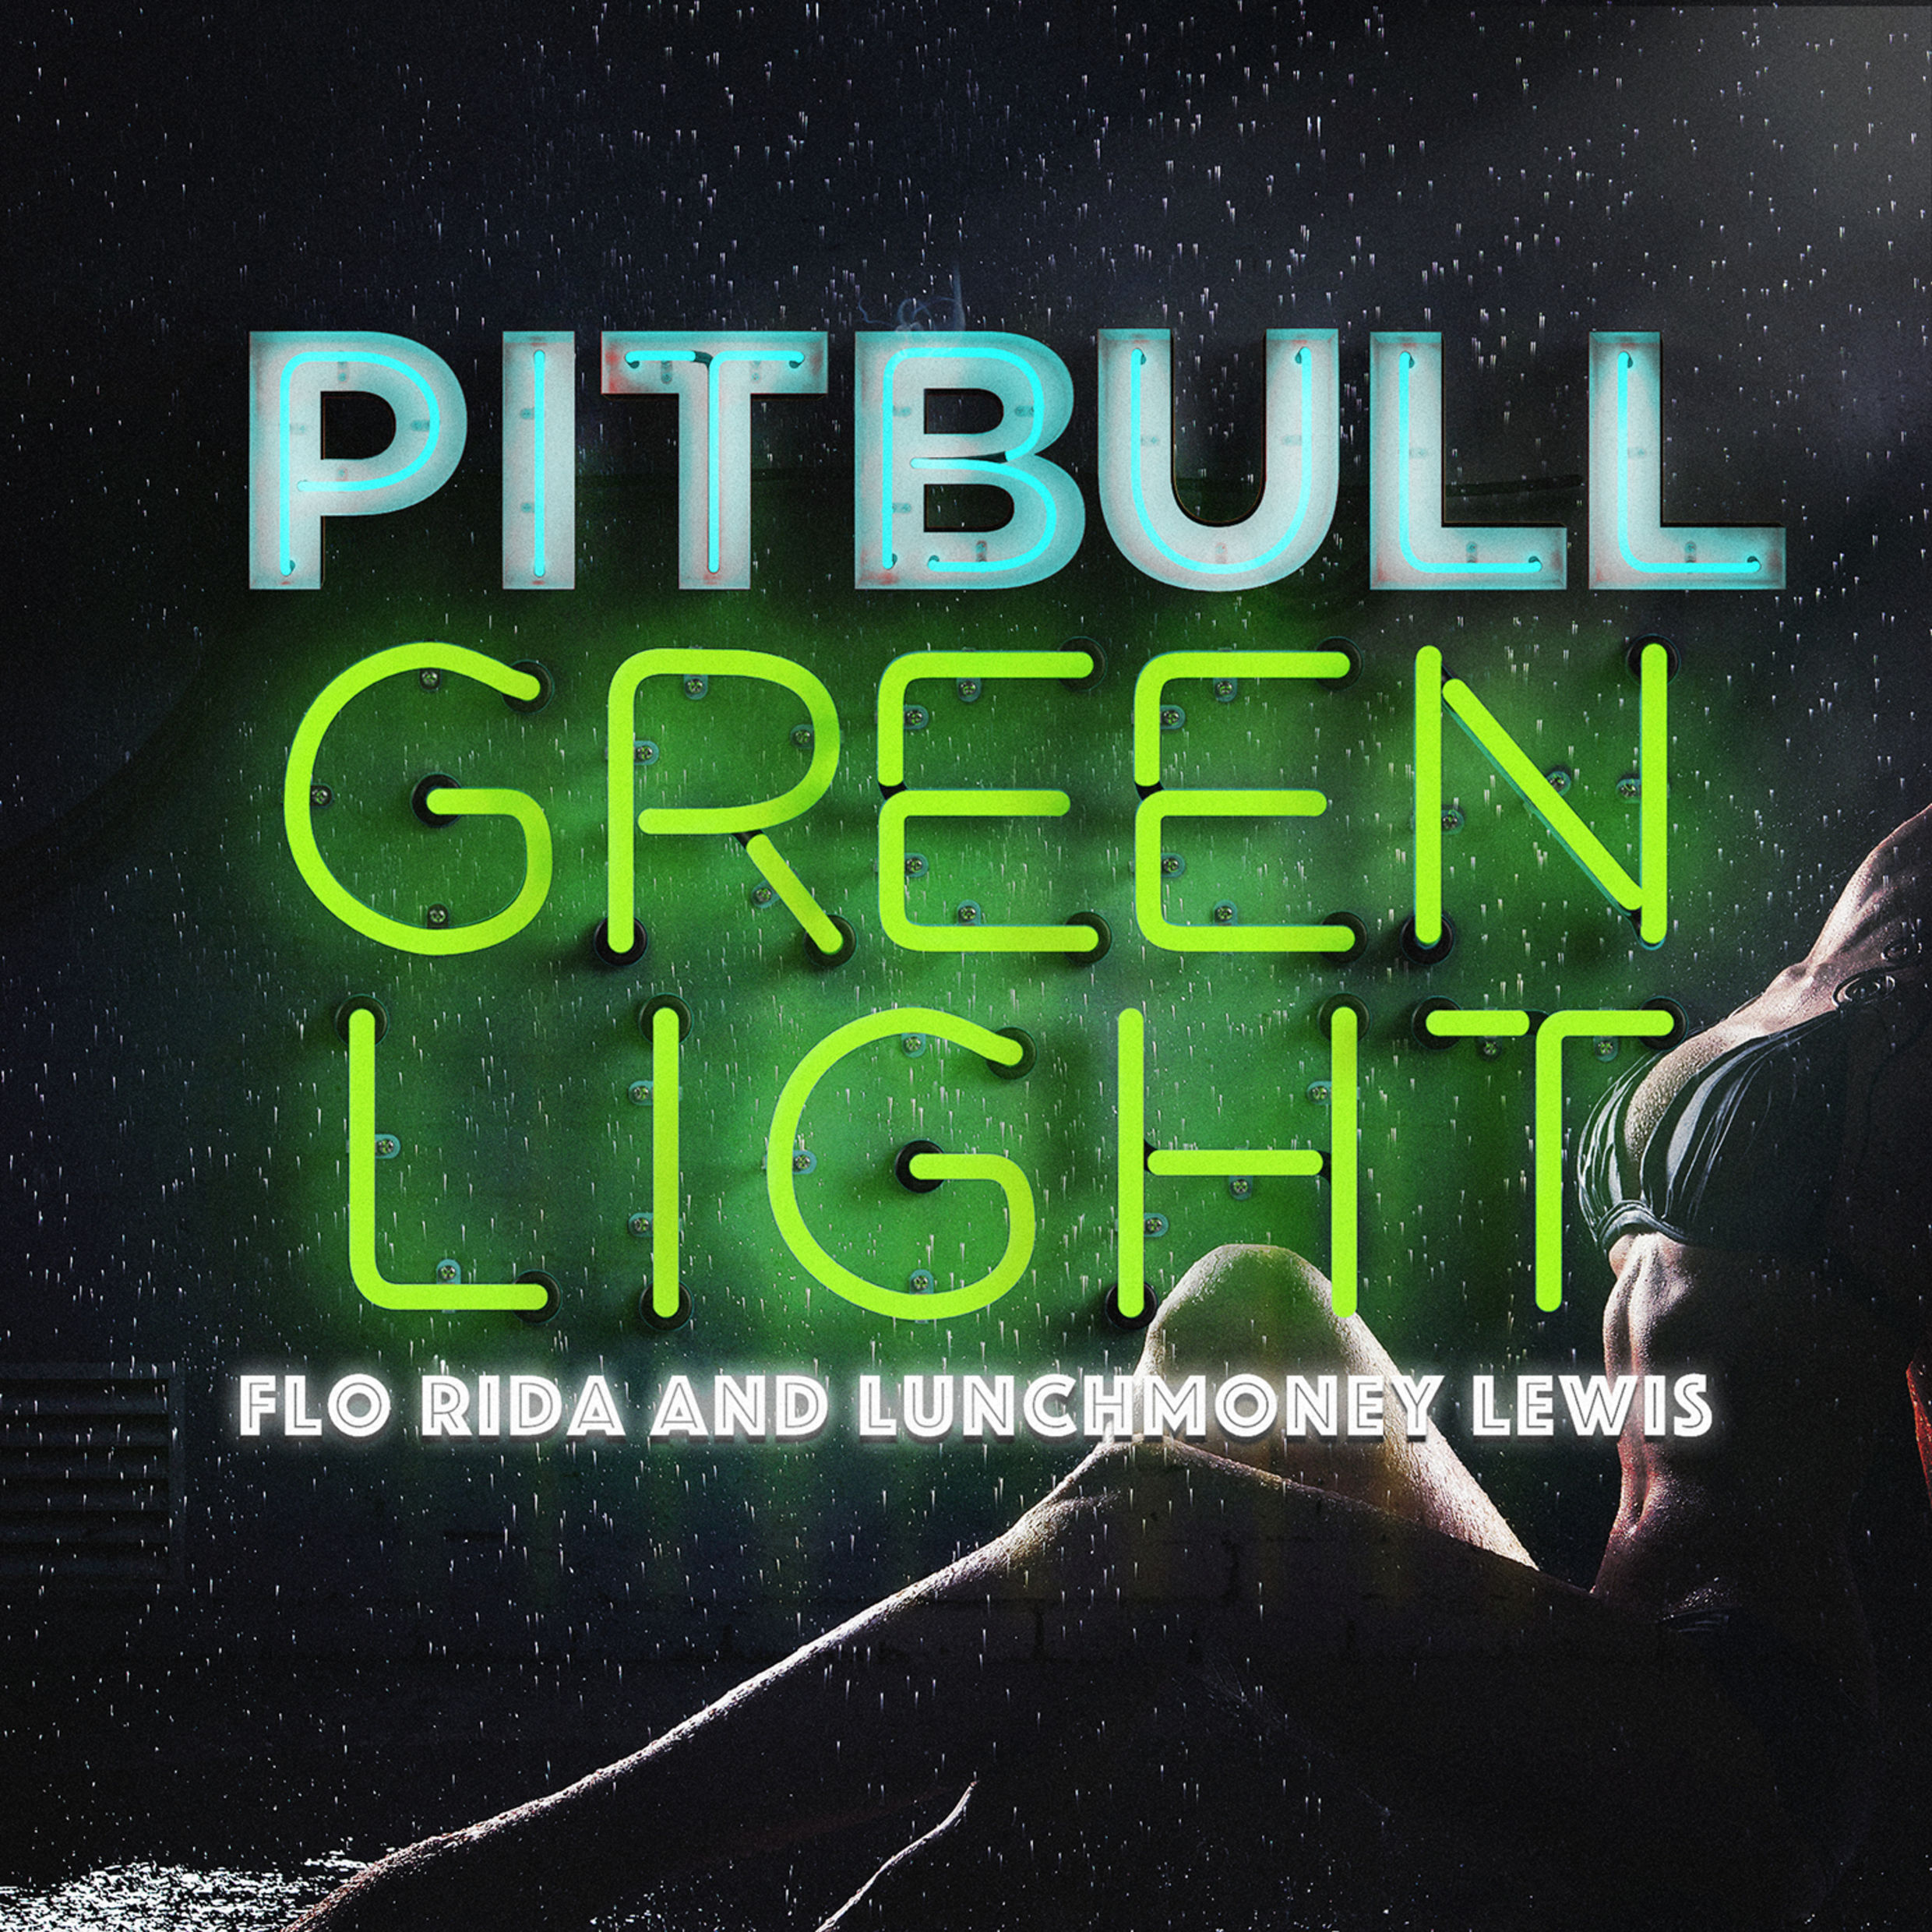 """Track Review: Pitbull ft. Flo Rida & Lunchmoney Lewis, """"Greenlight"""""""